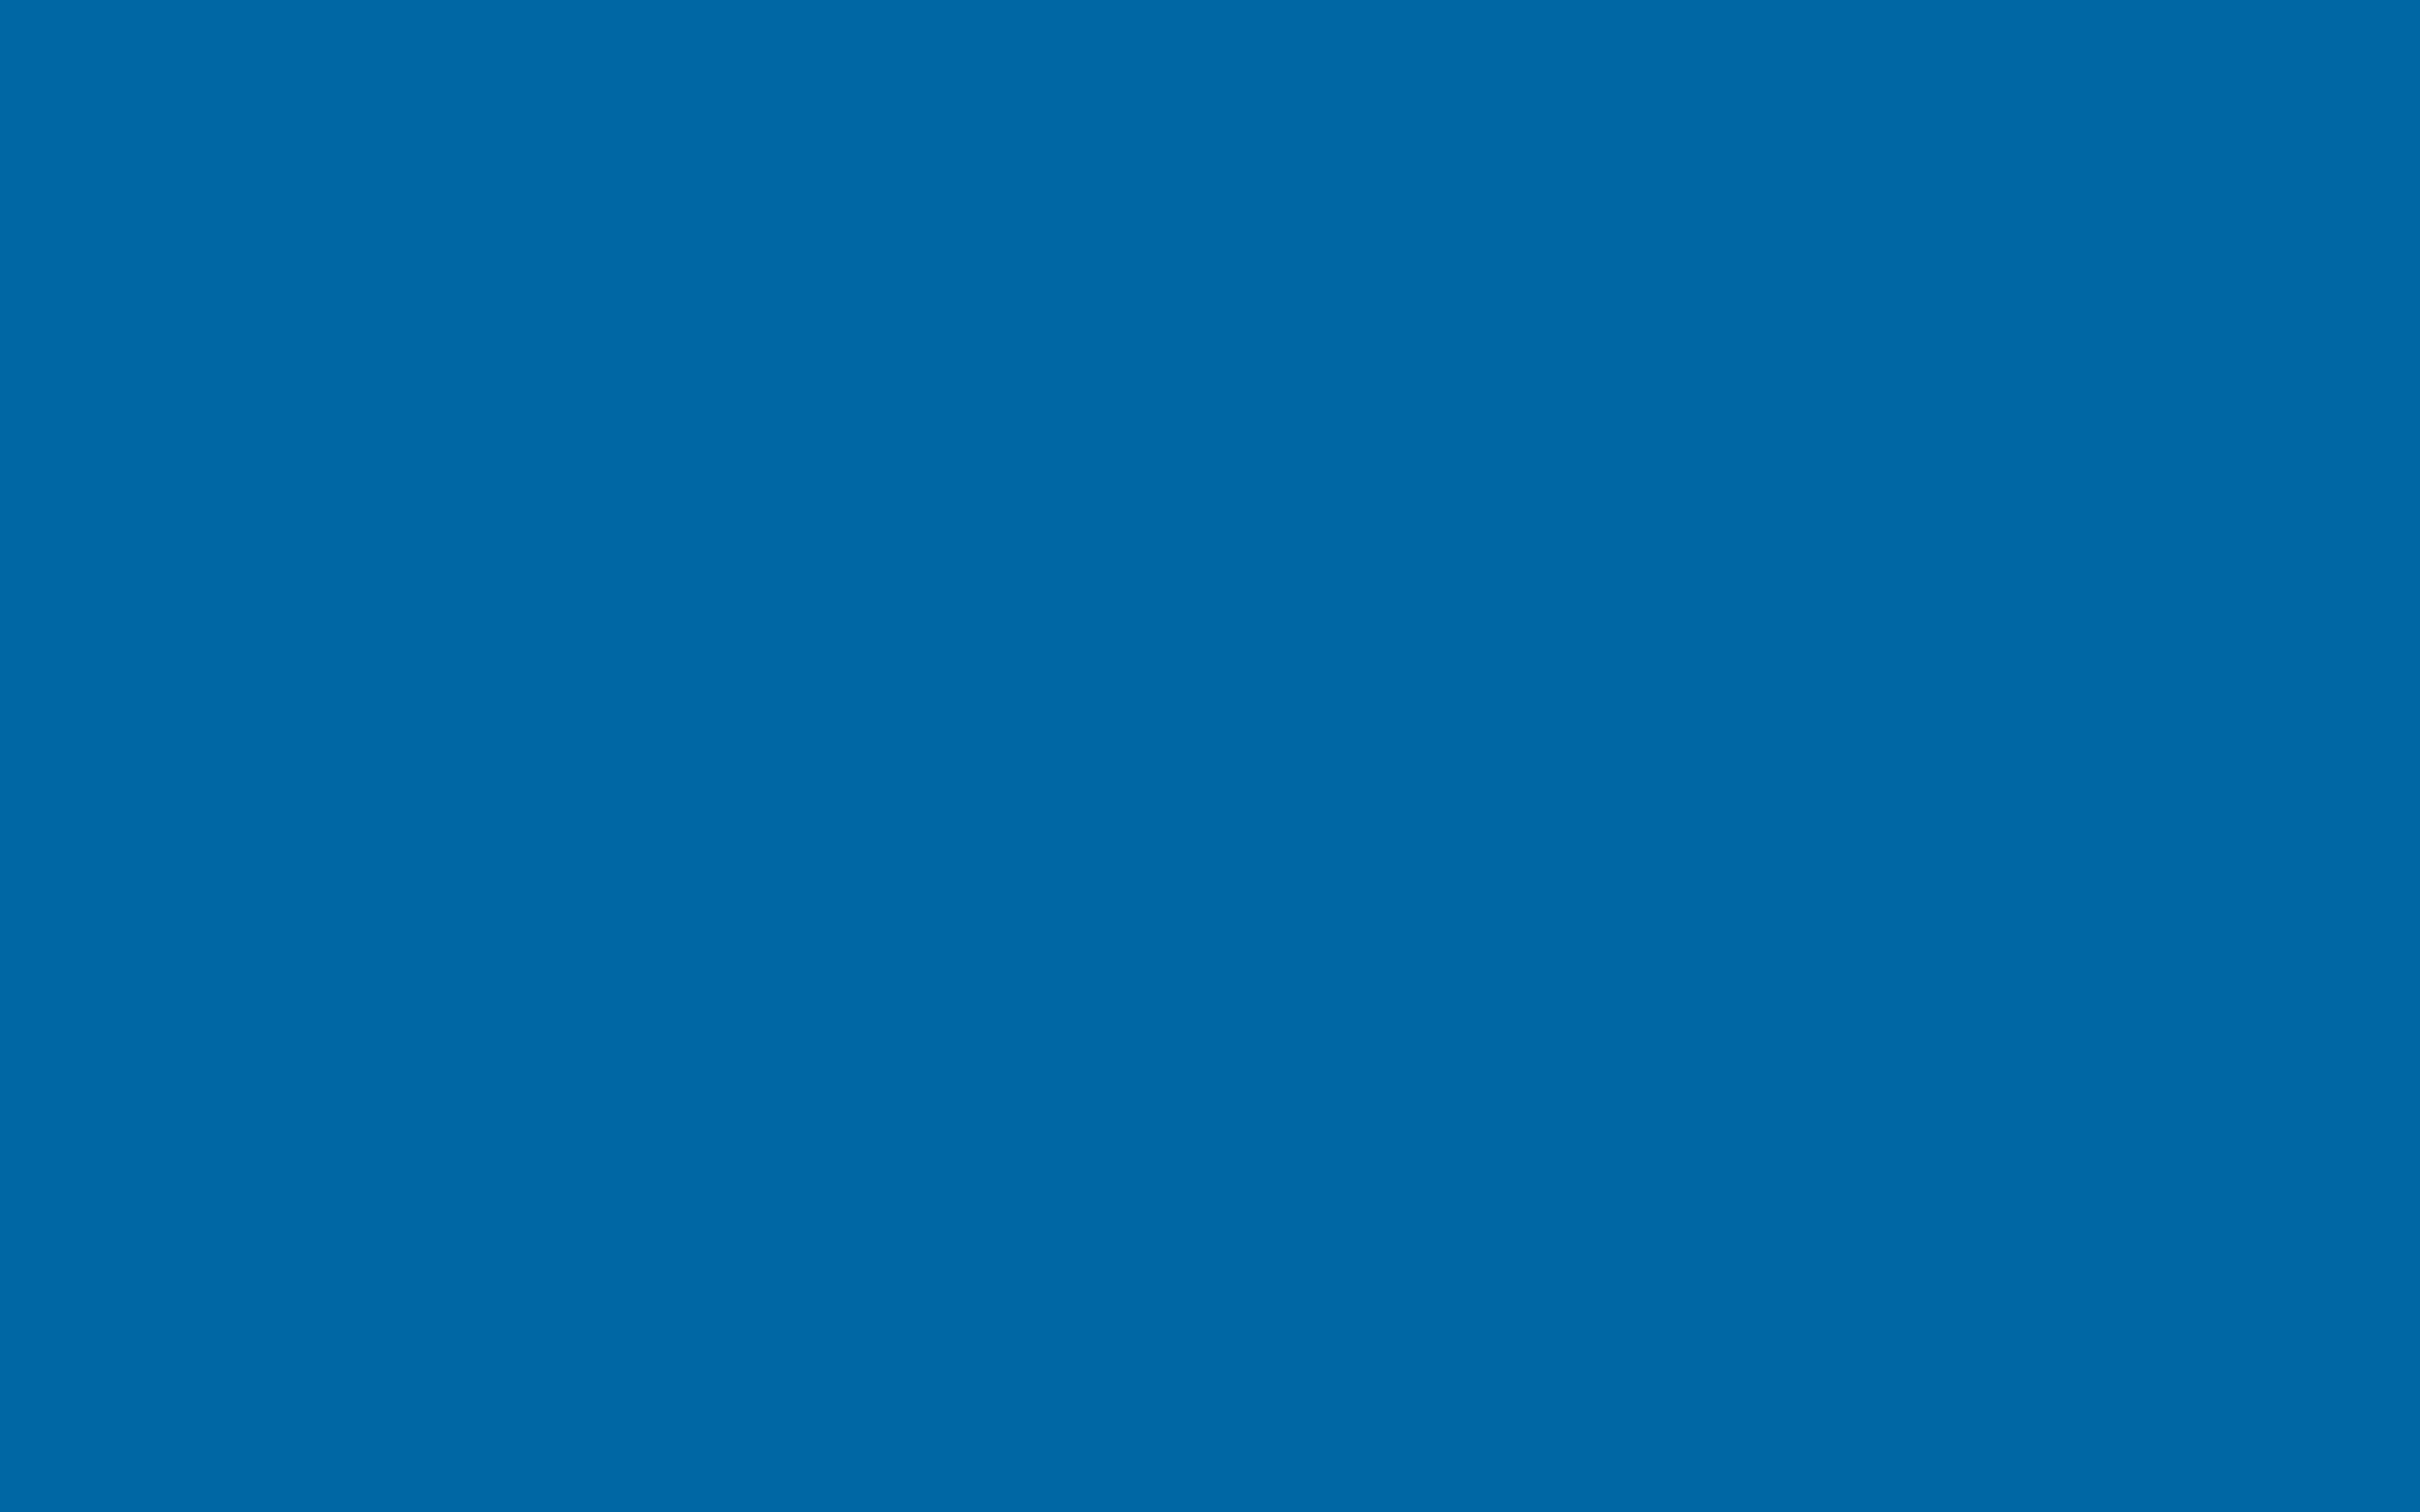 2560x1600 Sapphire Blue Solid Color Background